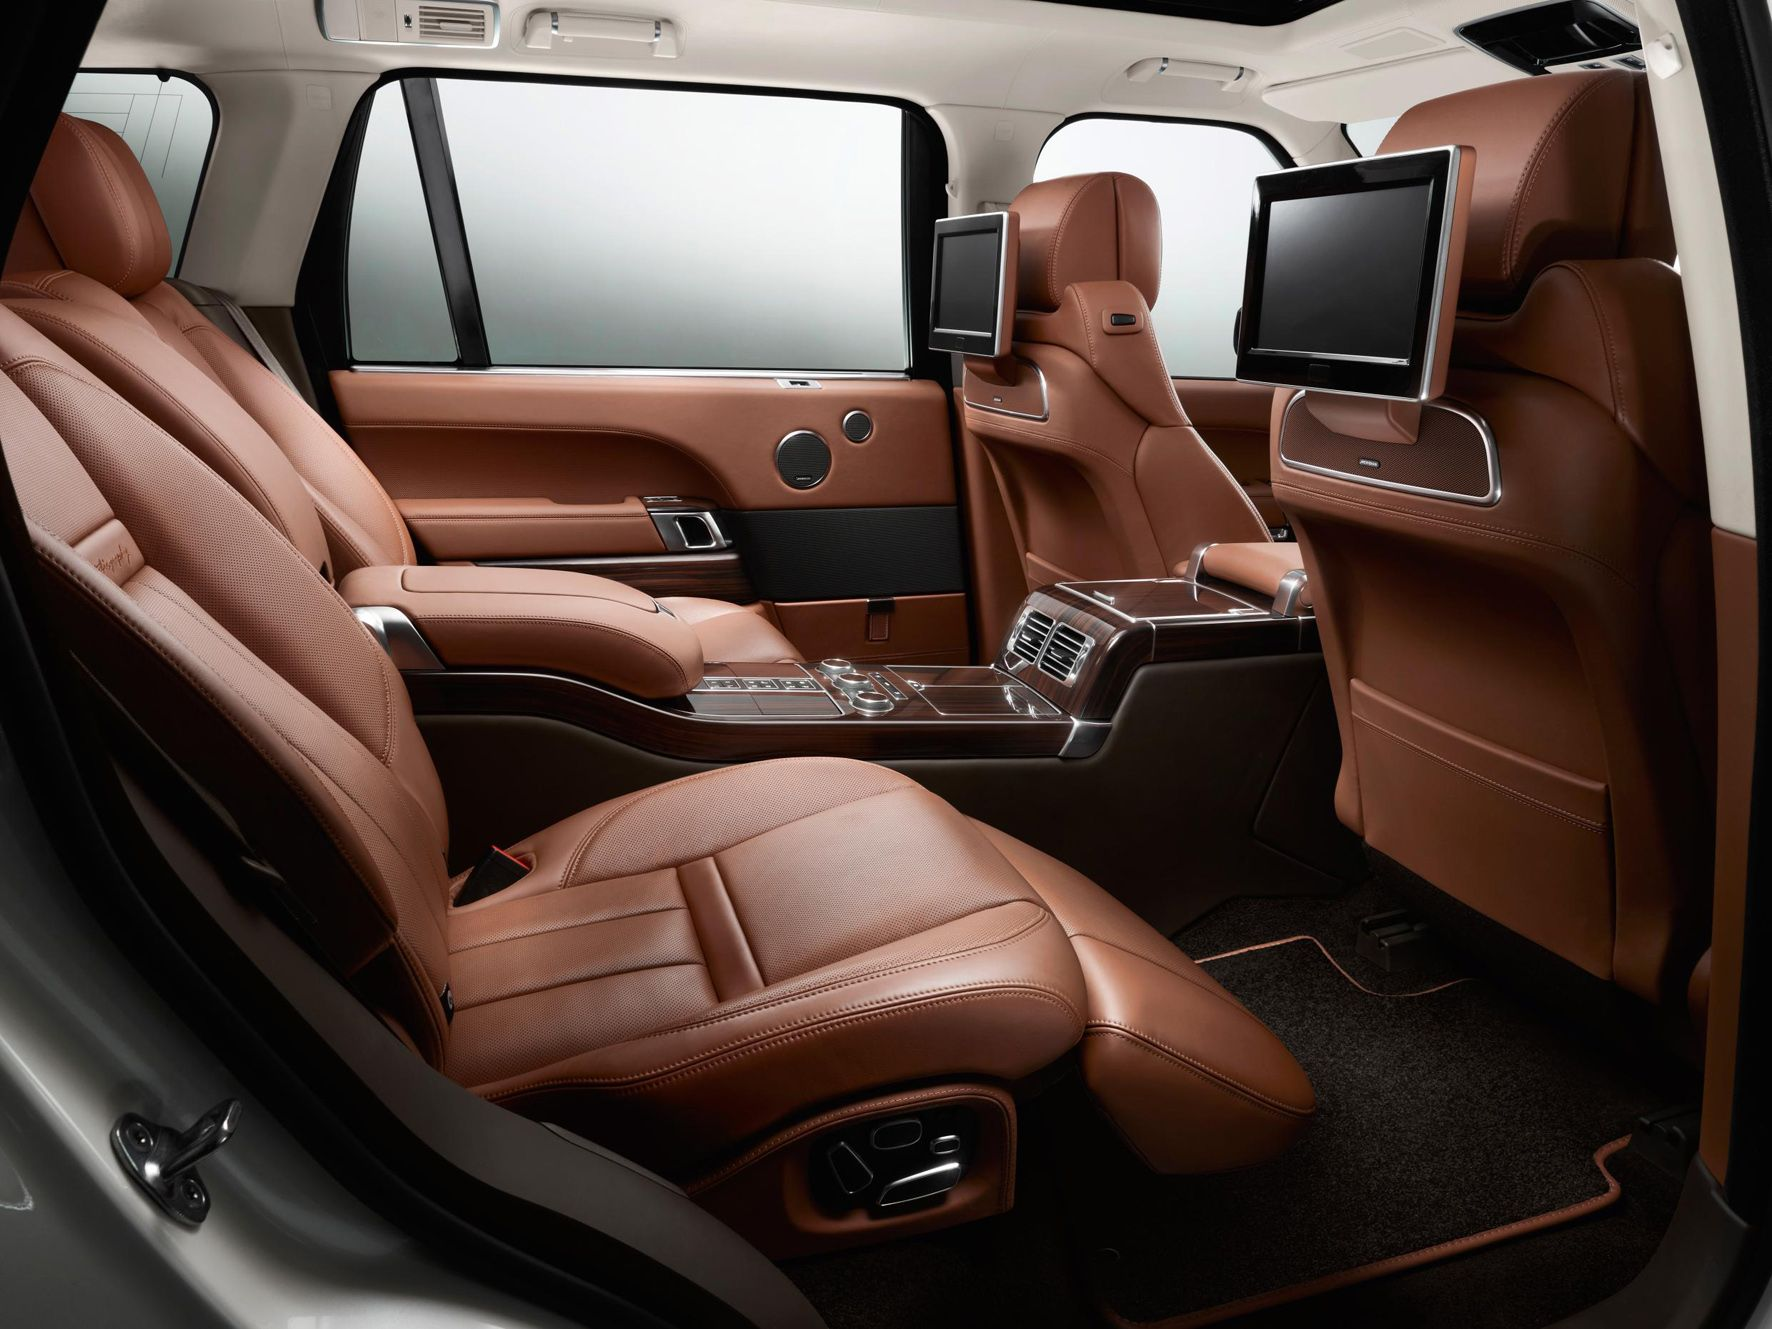 2014 range rover long wheel base autobiography interior range 3 pinterest range rovers wheels and land rovers